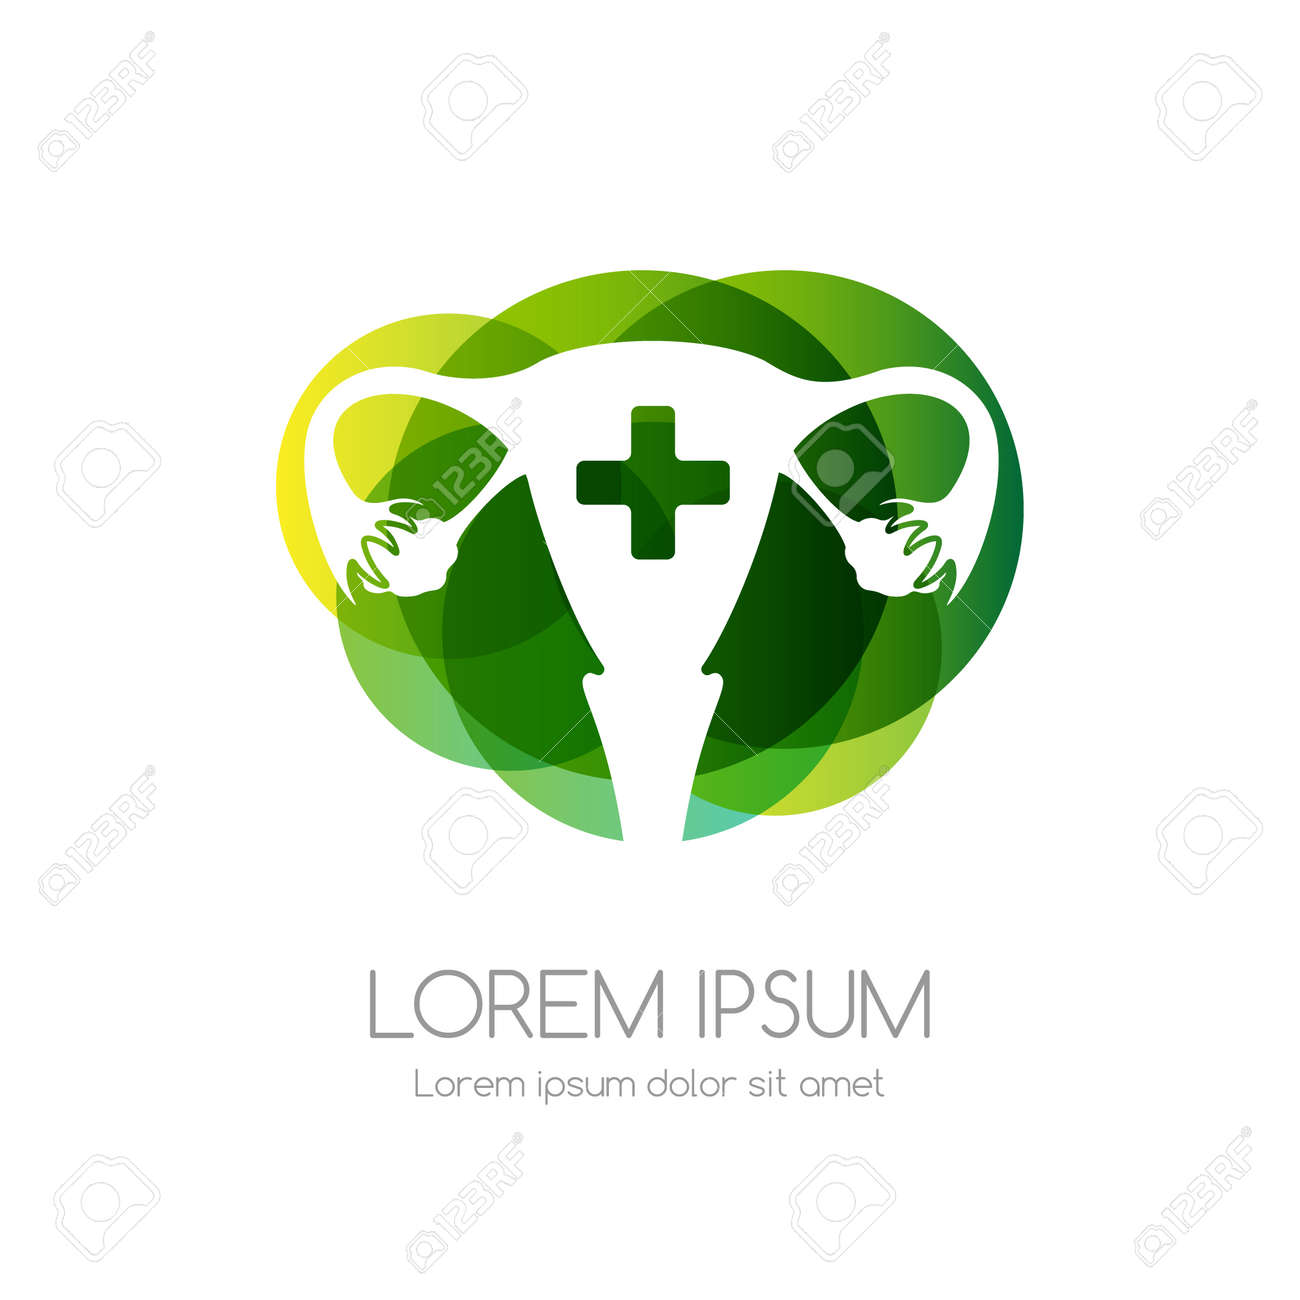 Uterus with cross and green abstract shape. Medical emblem. Health care vector icon. - 158145334